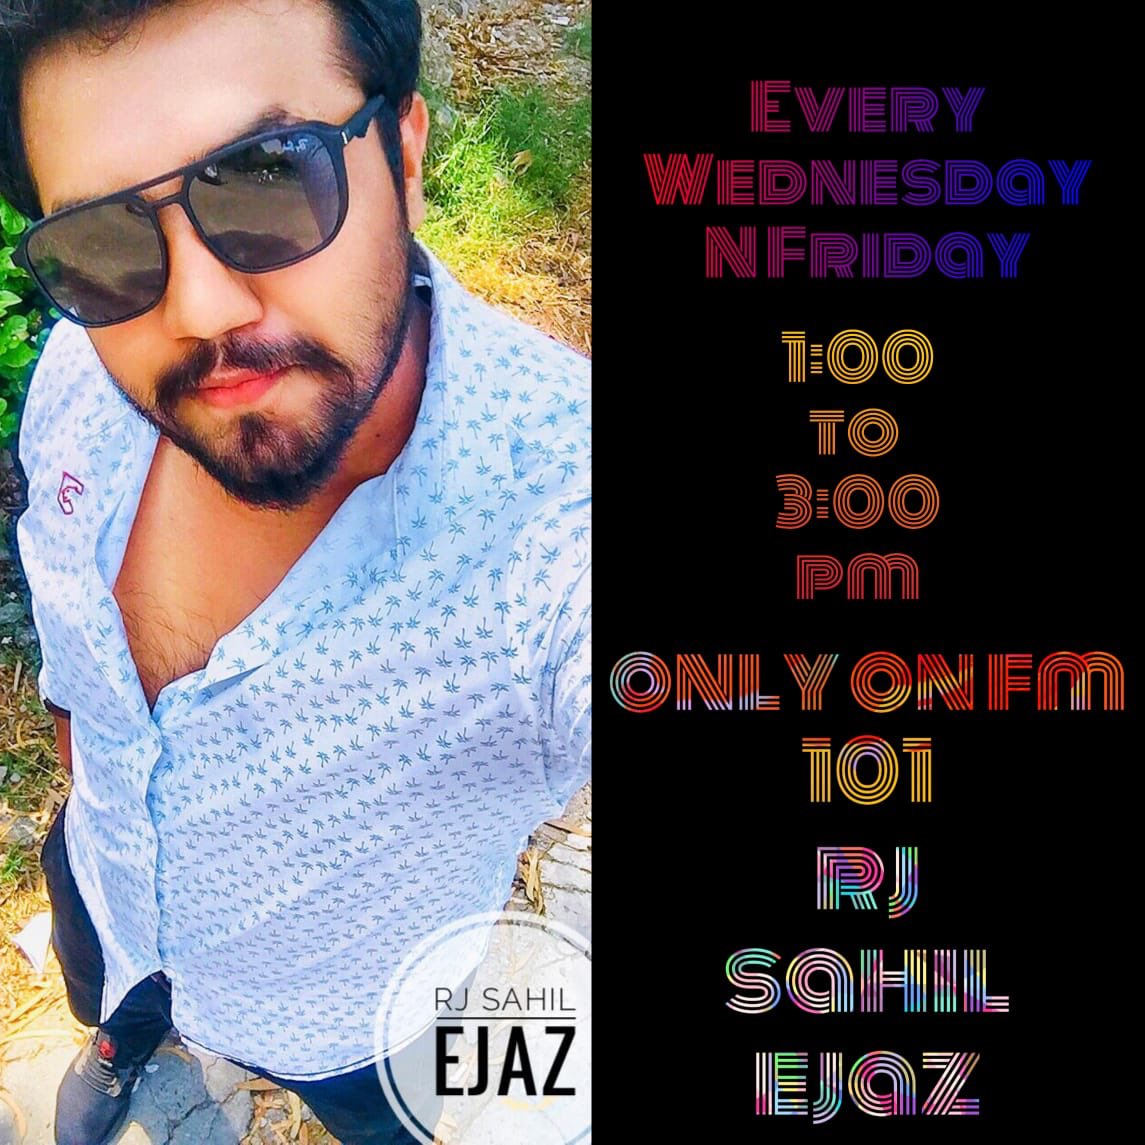 """Listen """" Smile & Dial"""" with Rj Sahil Ejaz from 01 to 03pm on #FM101pic.twitter.com/5gJtM3MZKq"""